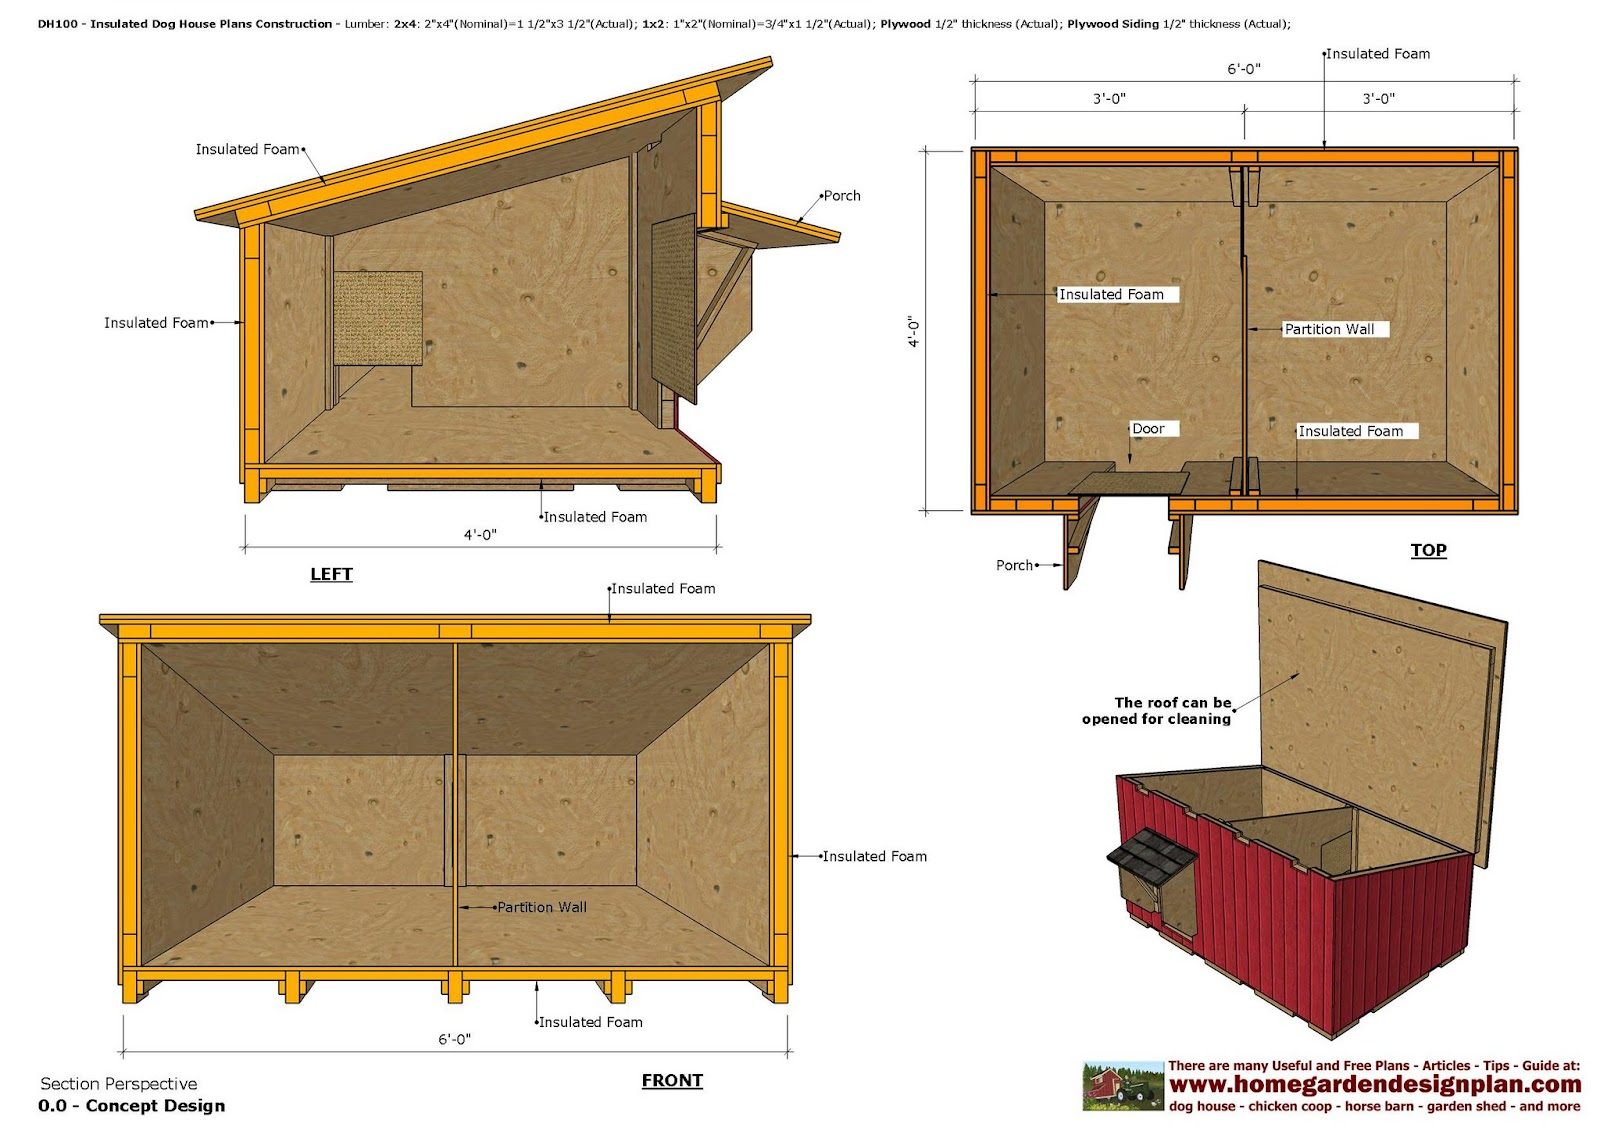 Home garden plans dh100 insulated dog house plans dog for Building a house layout